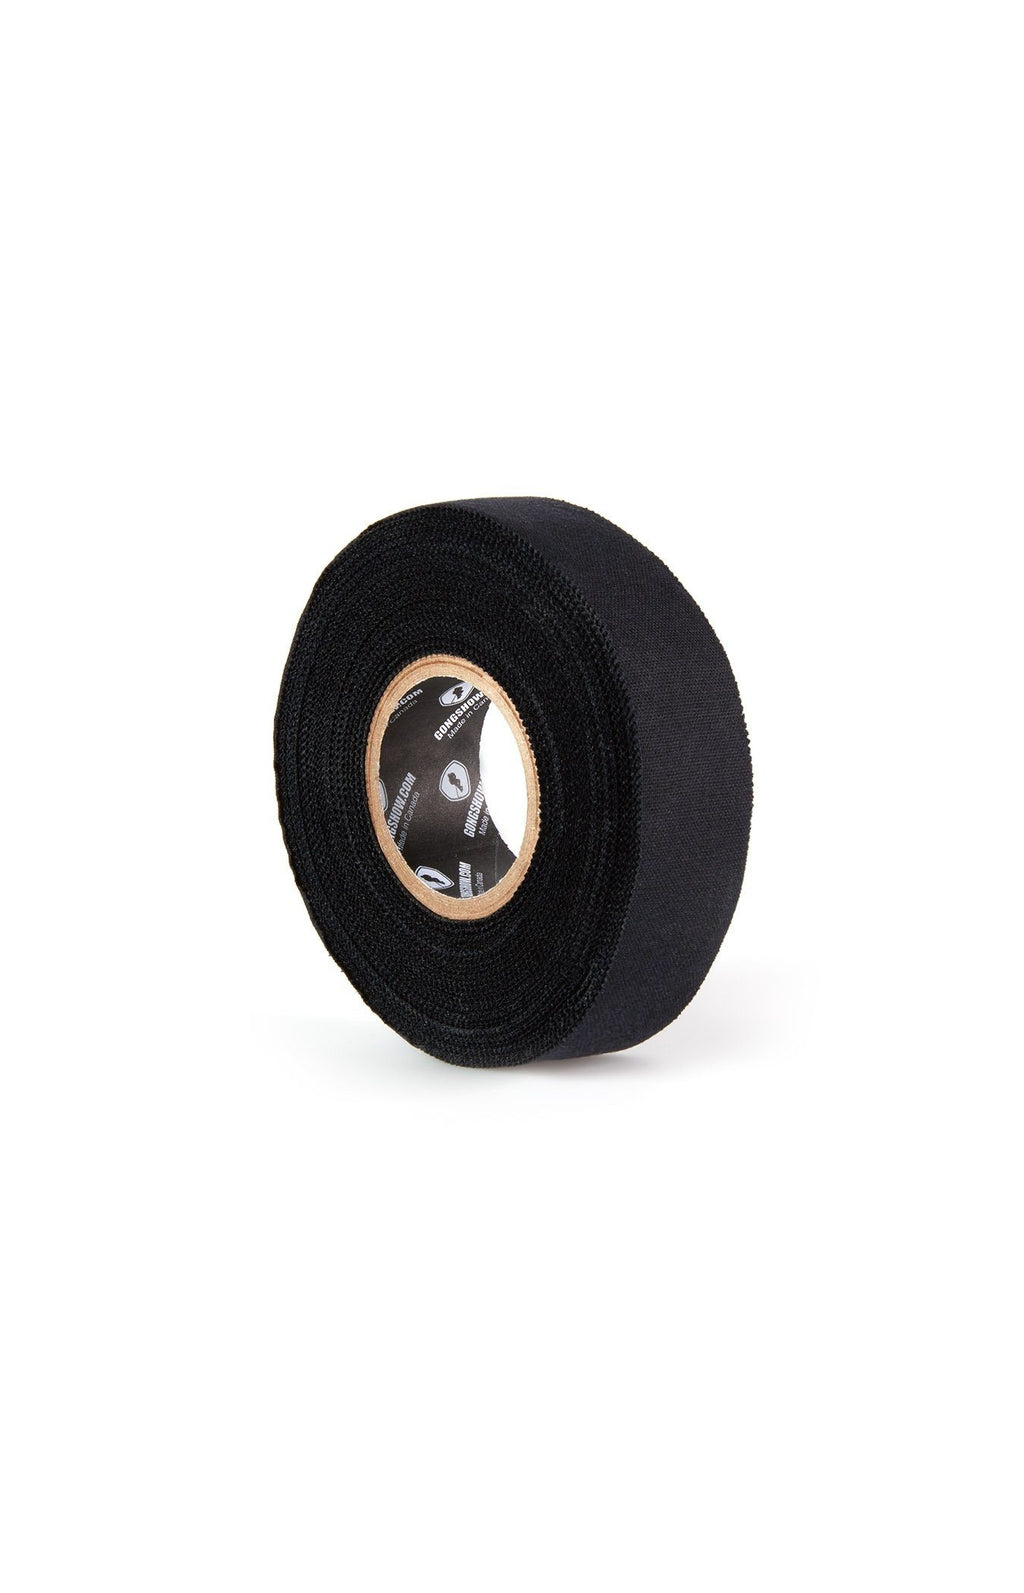 GONGSHOW Hockey Tape - Black 24 pack